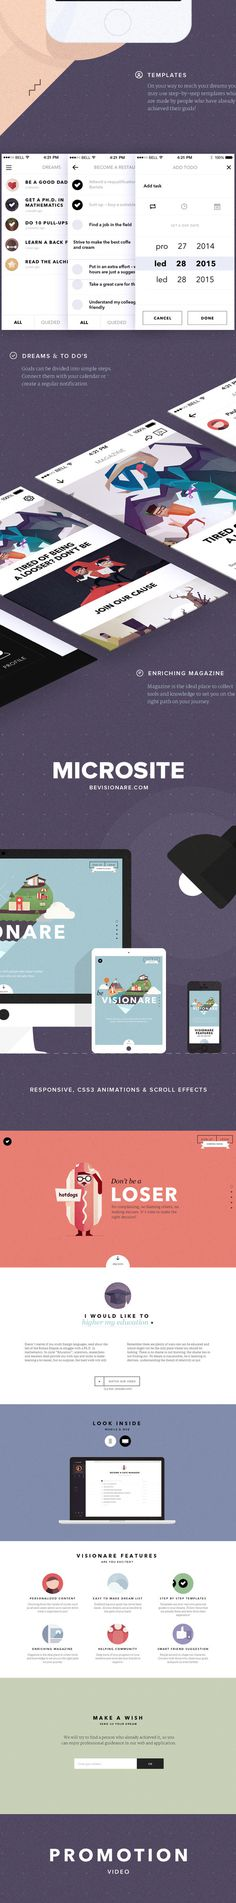 Visionare IOS Mobile App on Behance #app